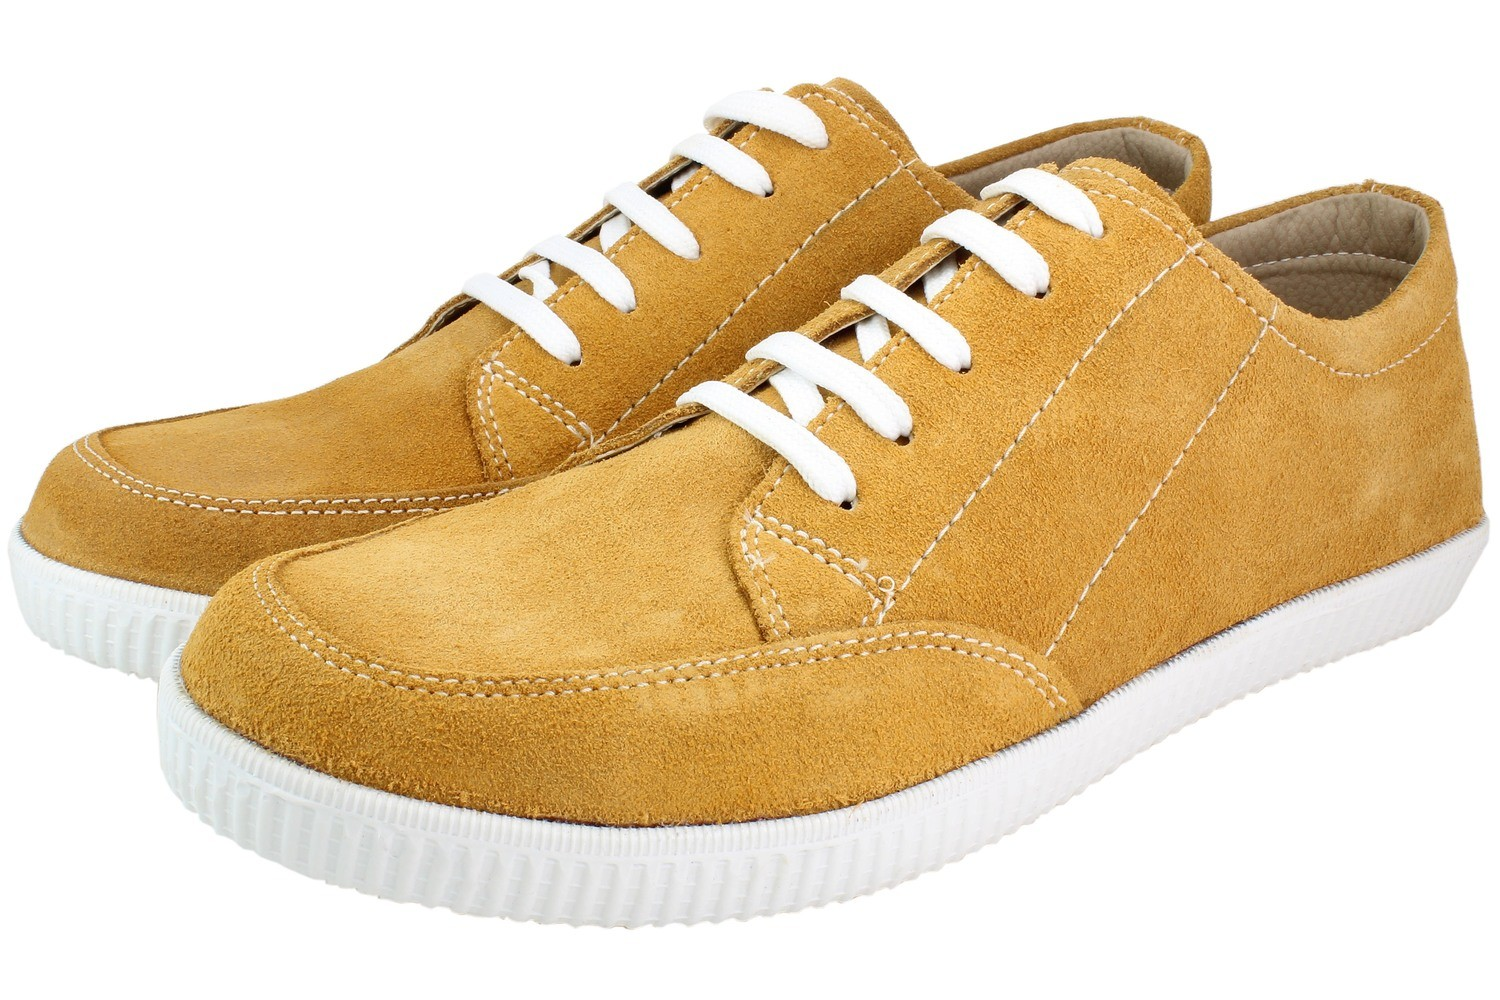 Mens Shoes Genuine Suede Leather Light Brown - SUGGESTED RETAIL PRICE $45 - WHOLESALE PRICE $7 - Minimum purchase 11 pairs